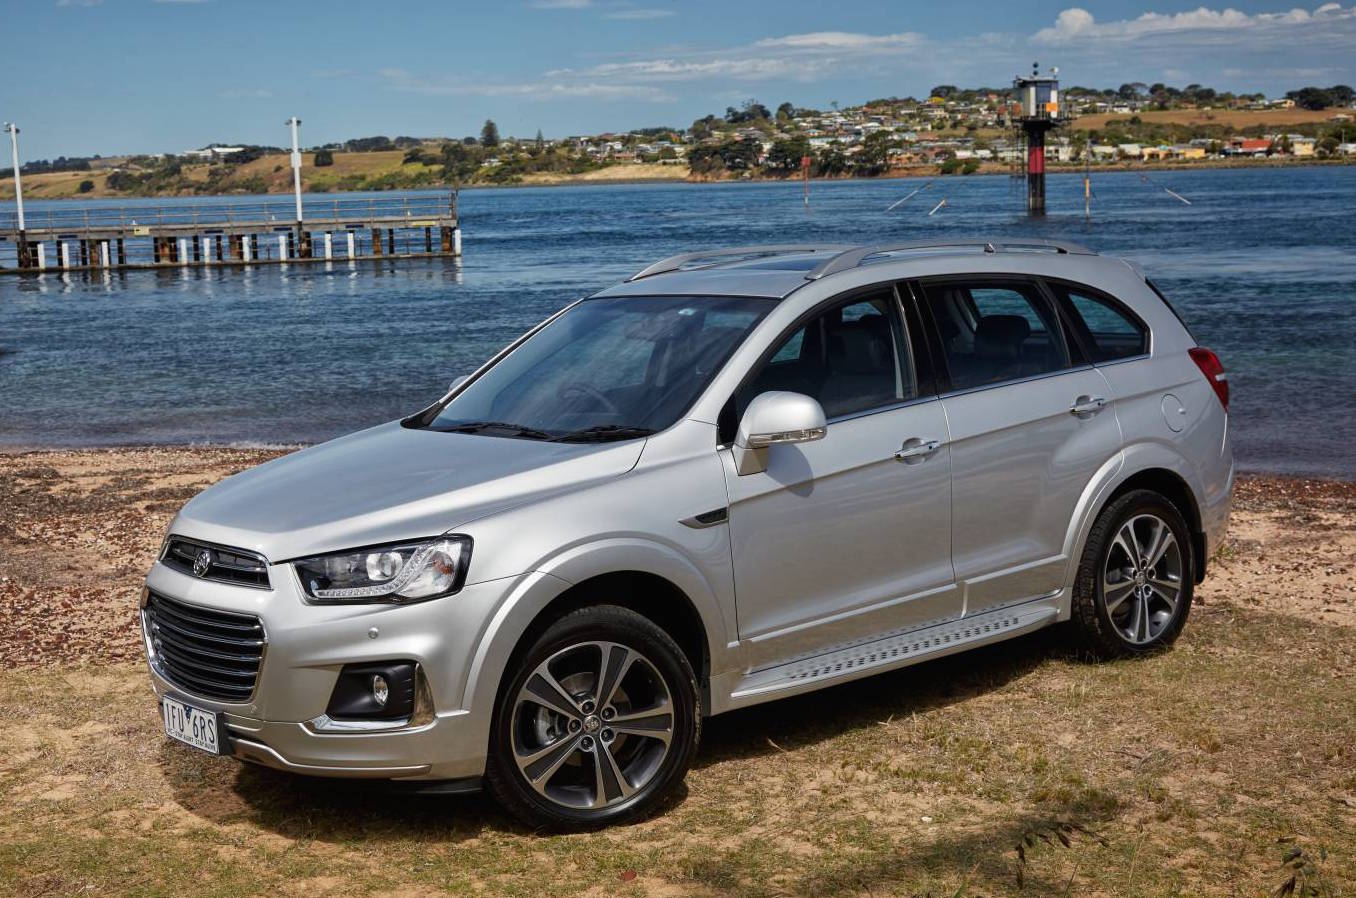 Holden captiva photo - 8